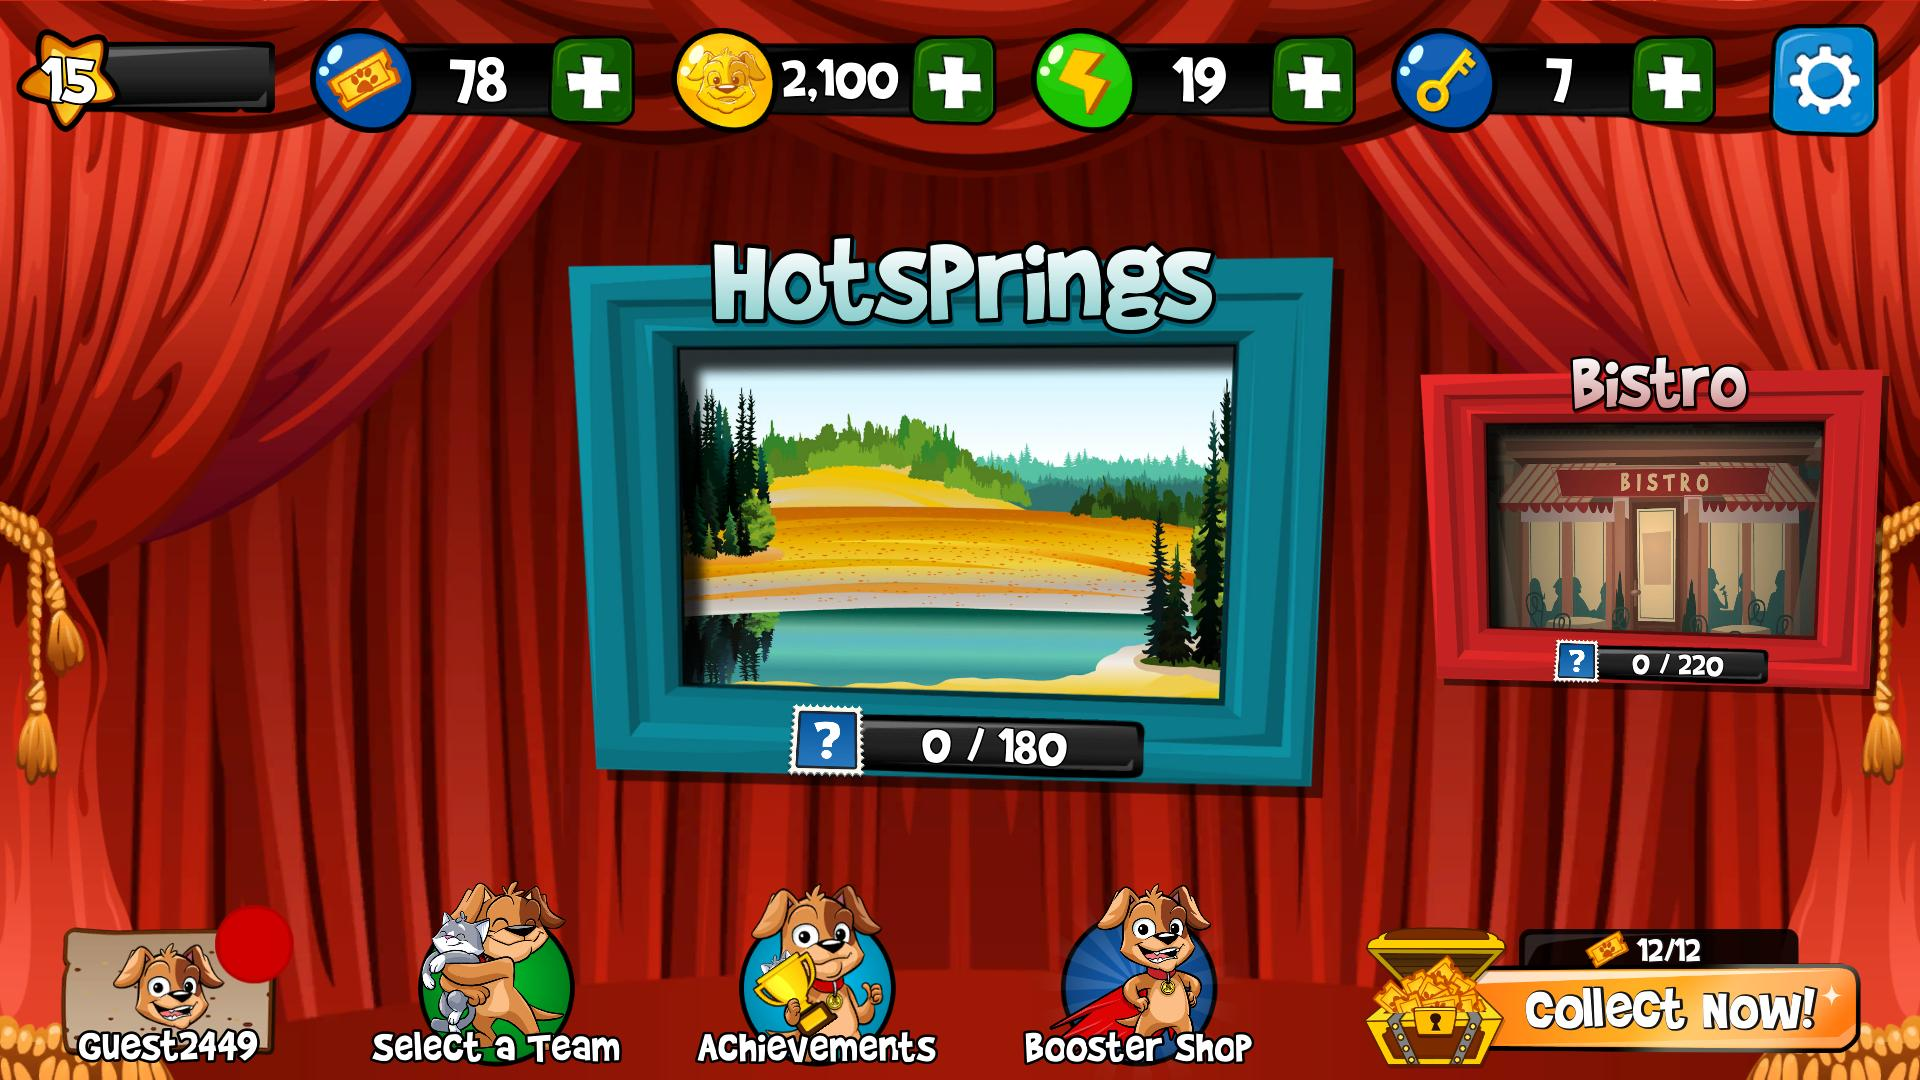 Bingo Abradoodle - Bingo Games Free to Play! 3.0.02 Screenshot 9